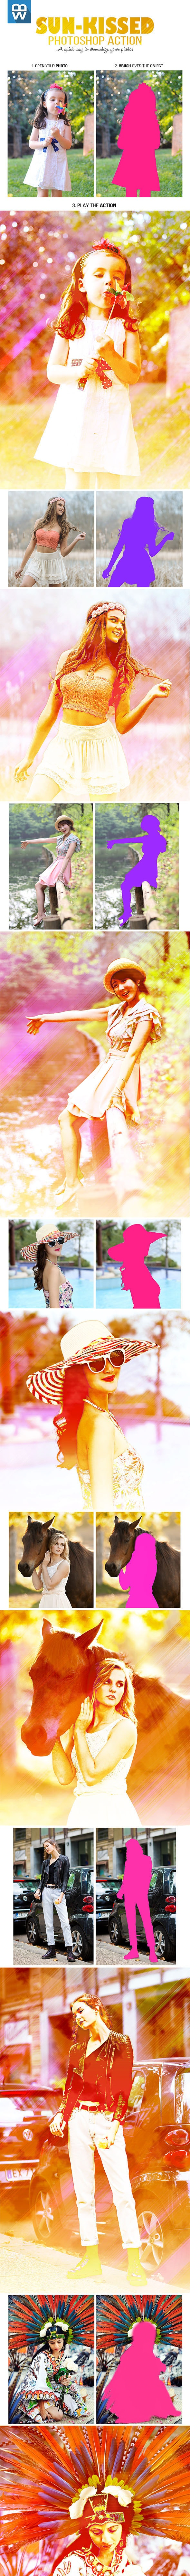 Sun-Kissed Photo Effect - Photo Effects Actions